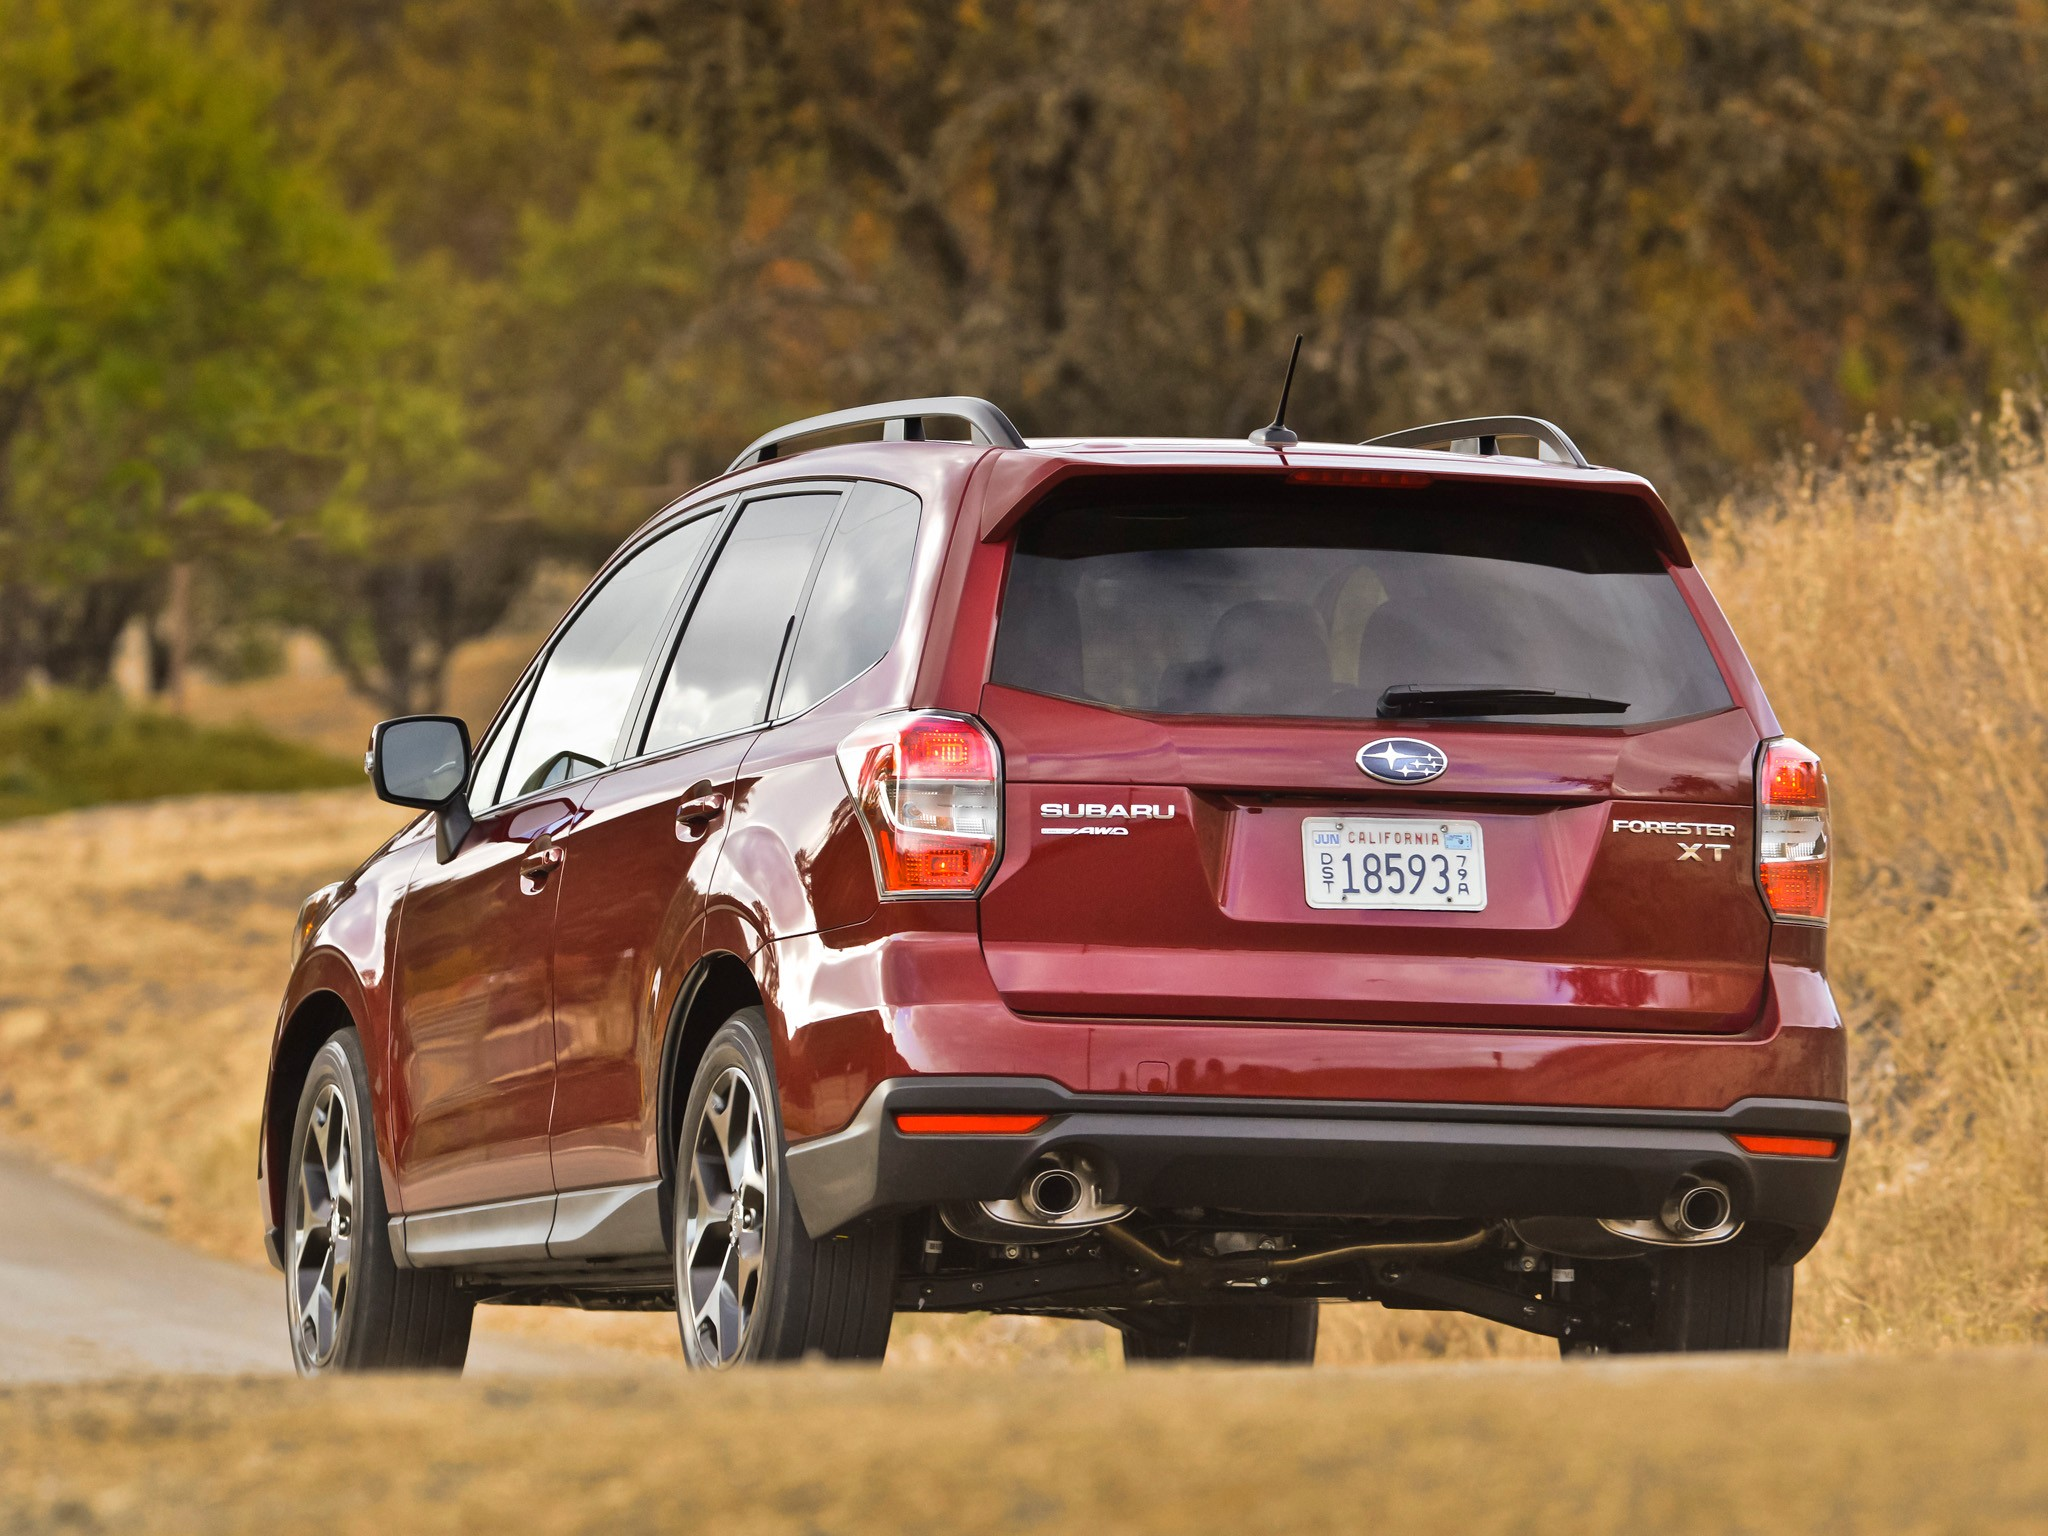 2013 Subaru Forester 2.0 XT USA